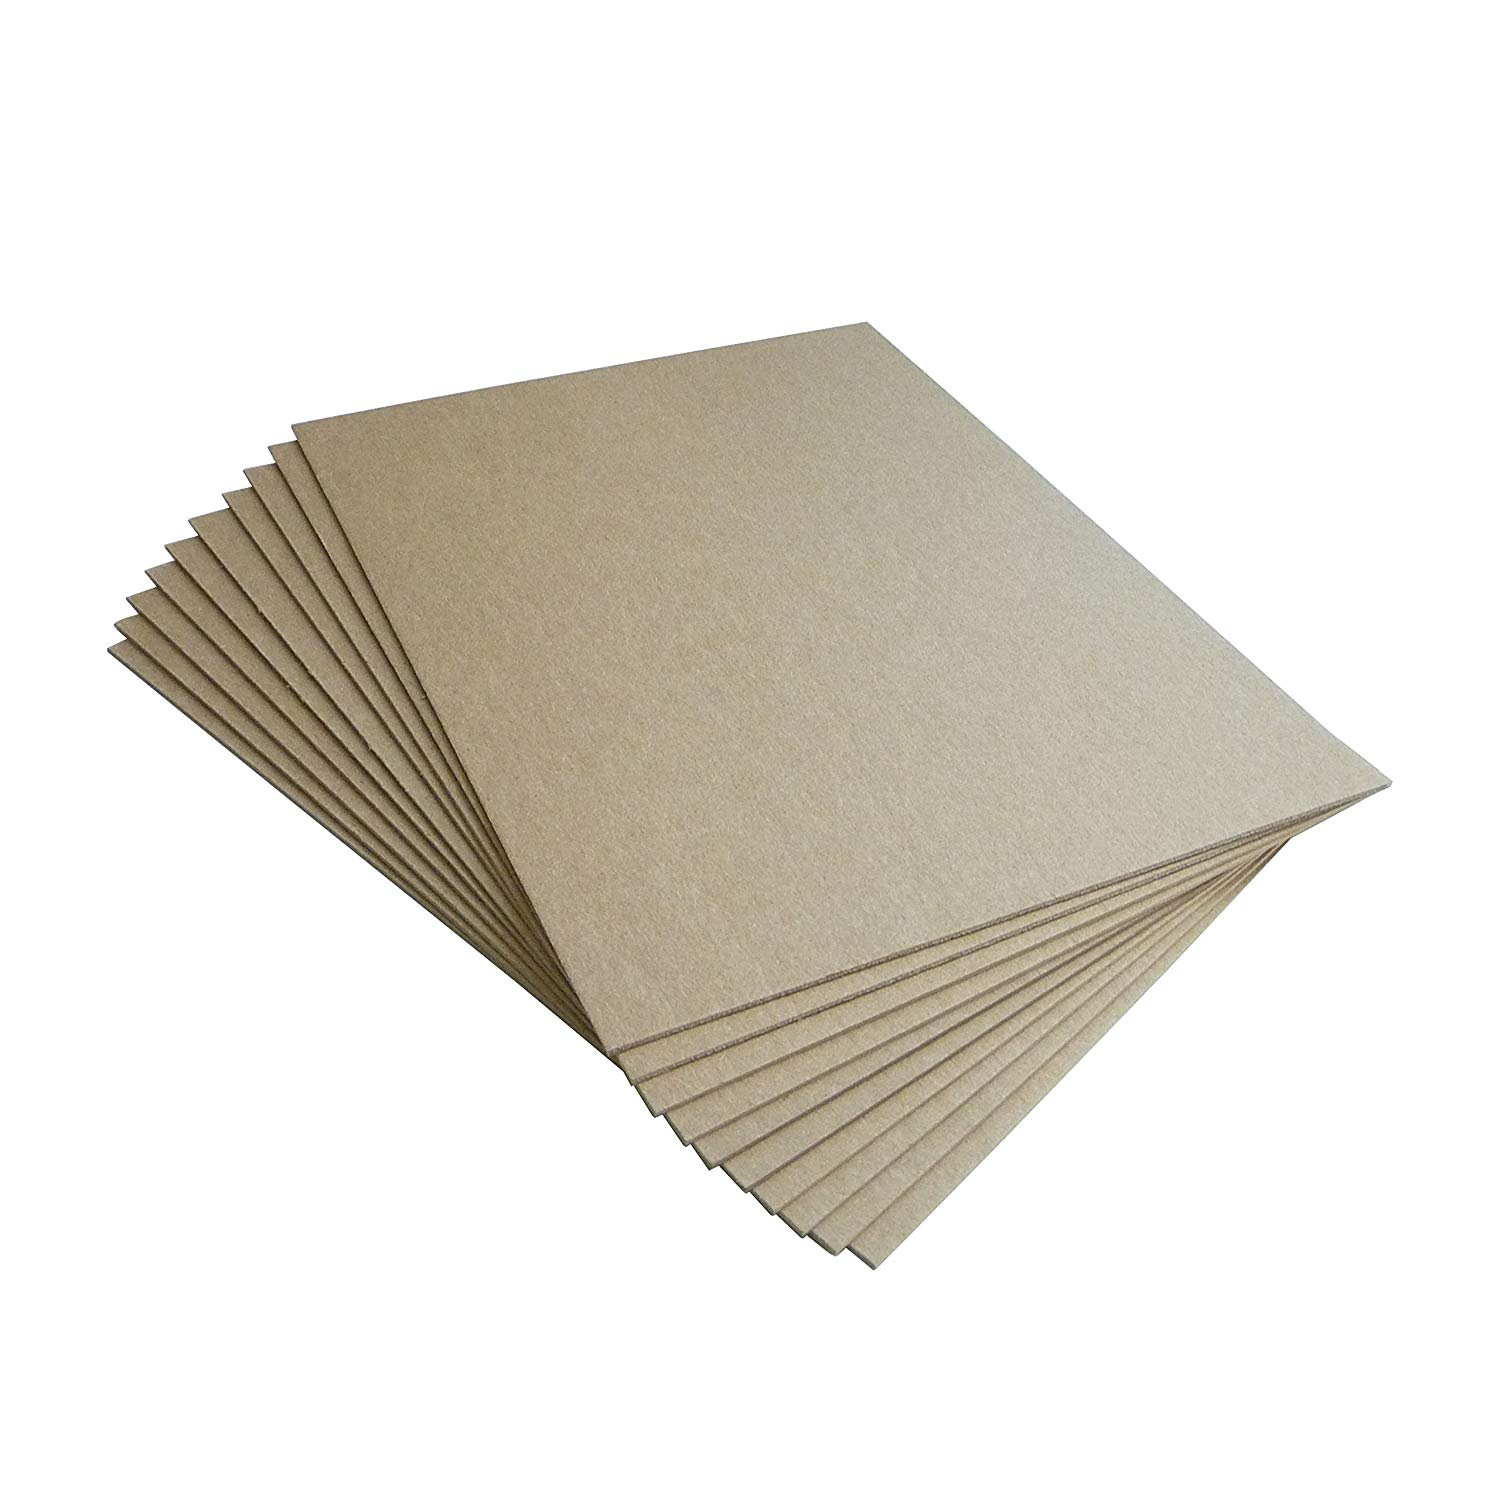 HGP 4.5 x 7 Chipboard Sheets for Arts and Crafts Scrapbooking Backing Mounting Board Picture Framing Shipping Cardboard 10 pack